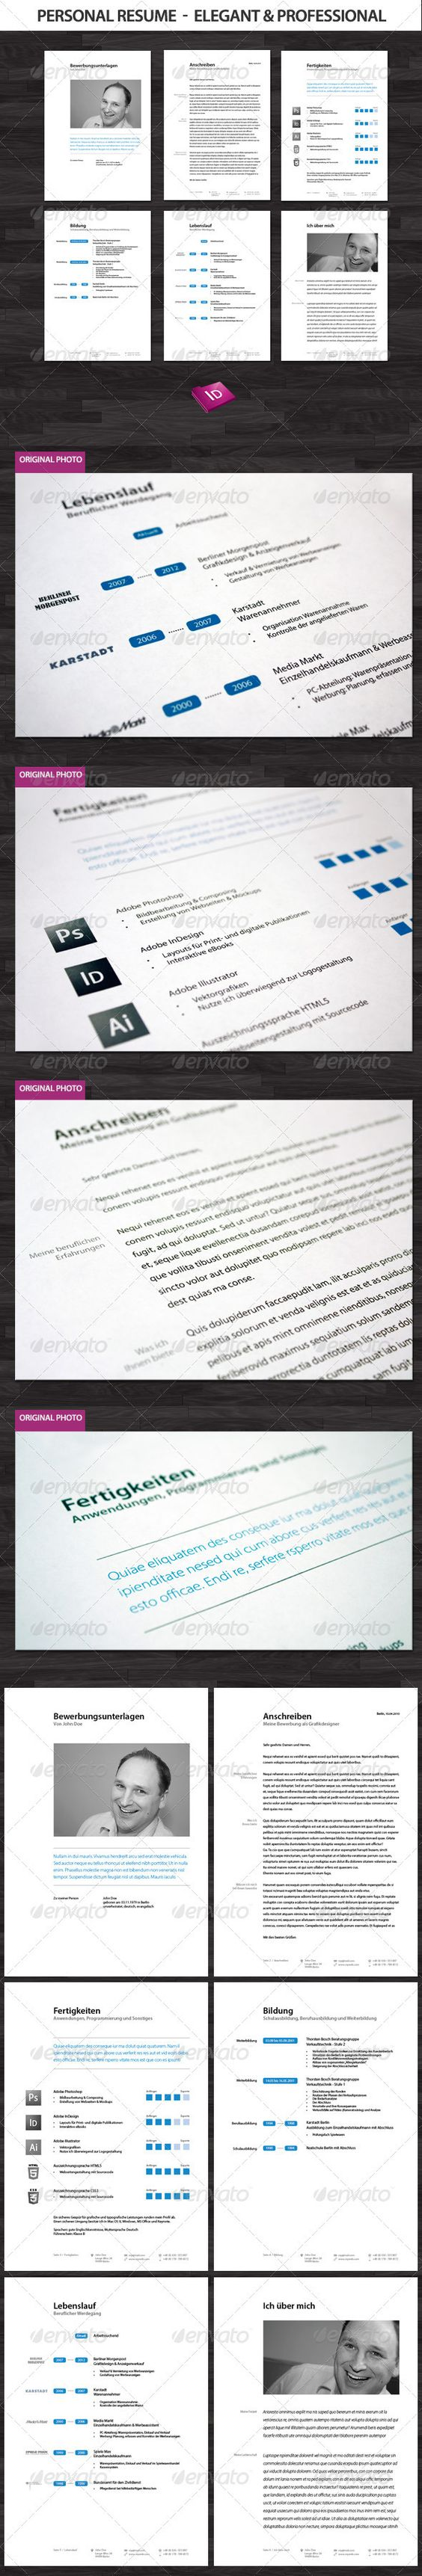 professional and elegant resume set resume pro tip and new job